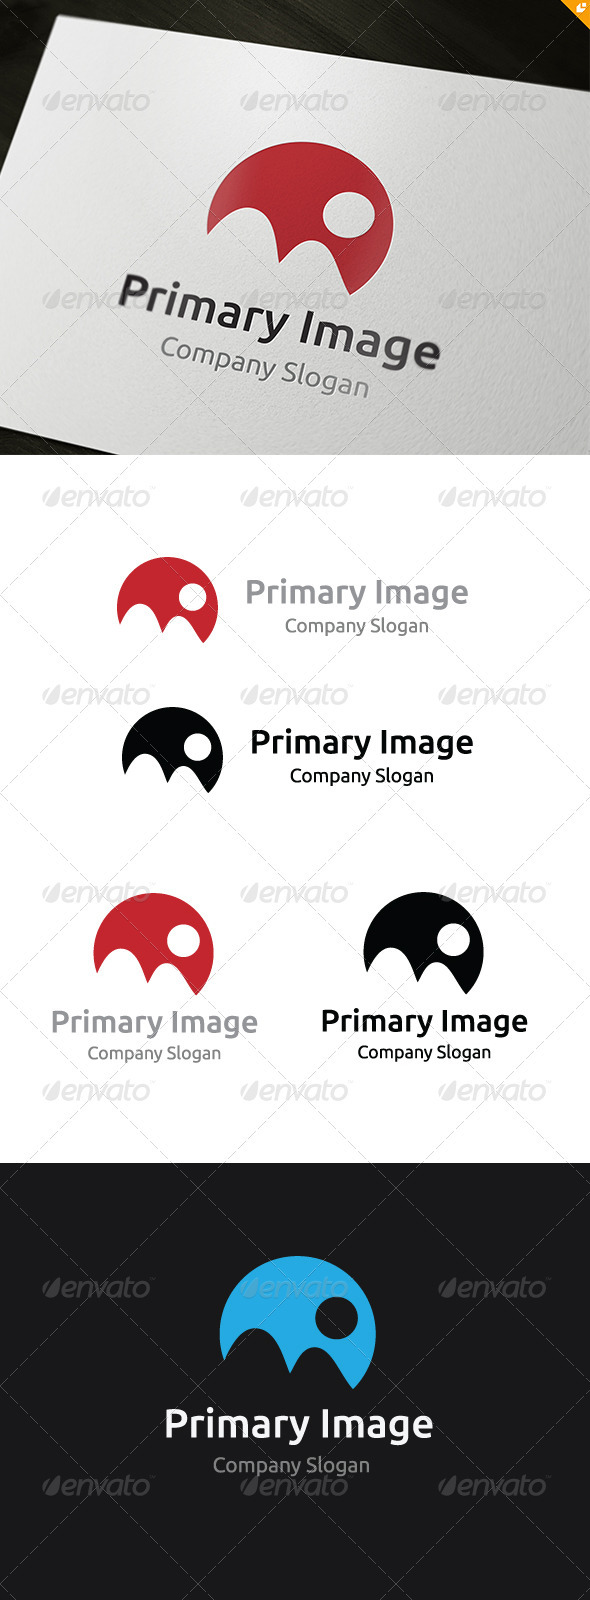 Primary Image Logo - Vector Abstract